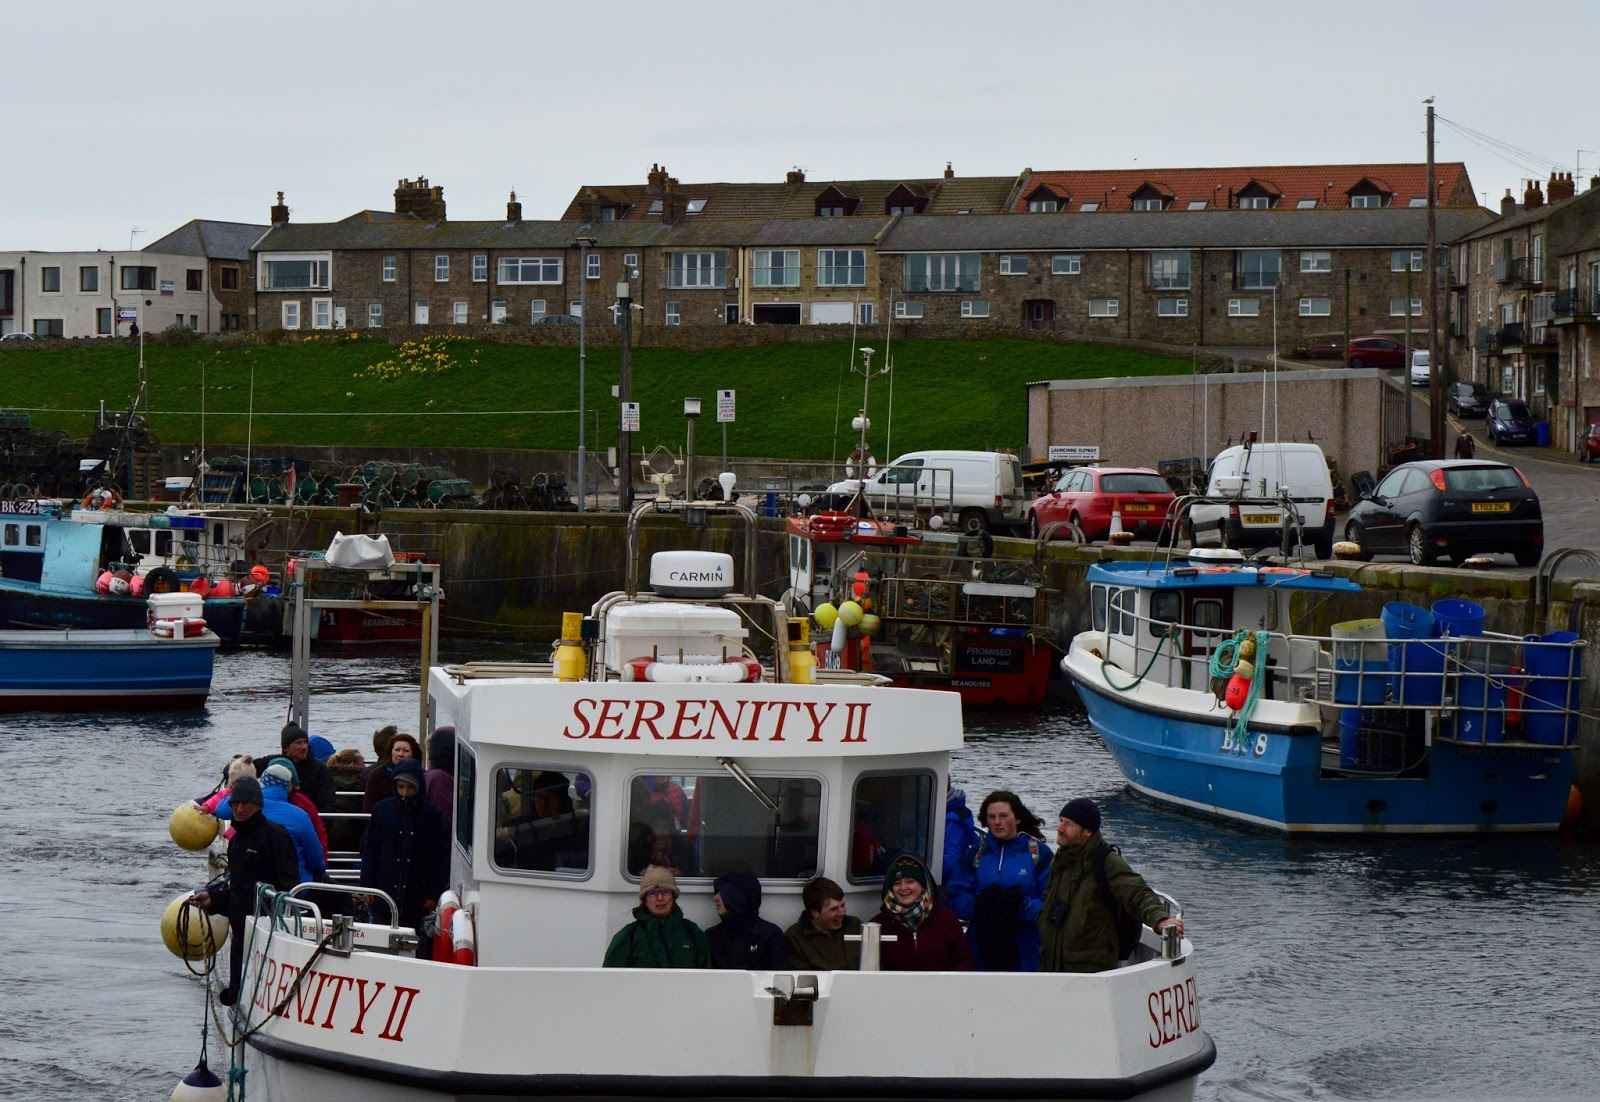 Farne Island Boat Trips with Serenity | A review and what to expect with kids - Serenity Boat II